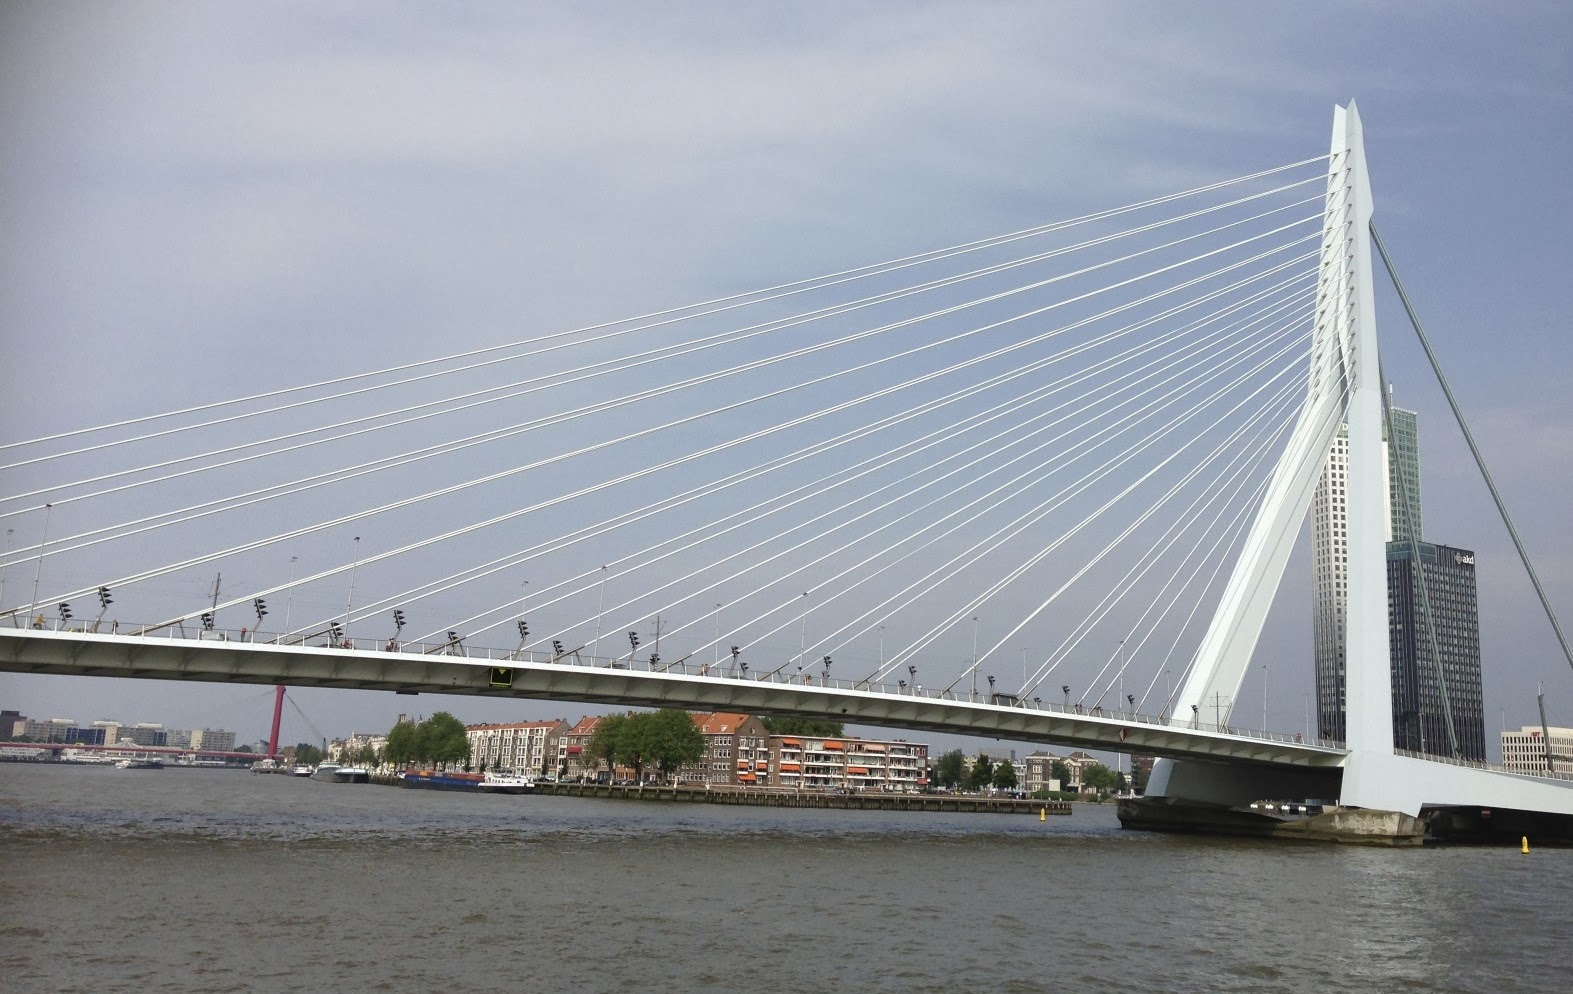 Erasmusbrug (bridge) in Rotterdam